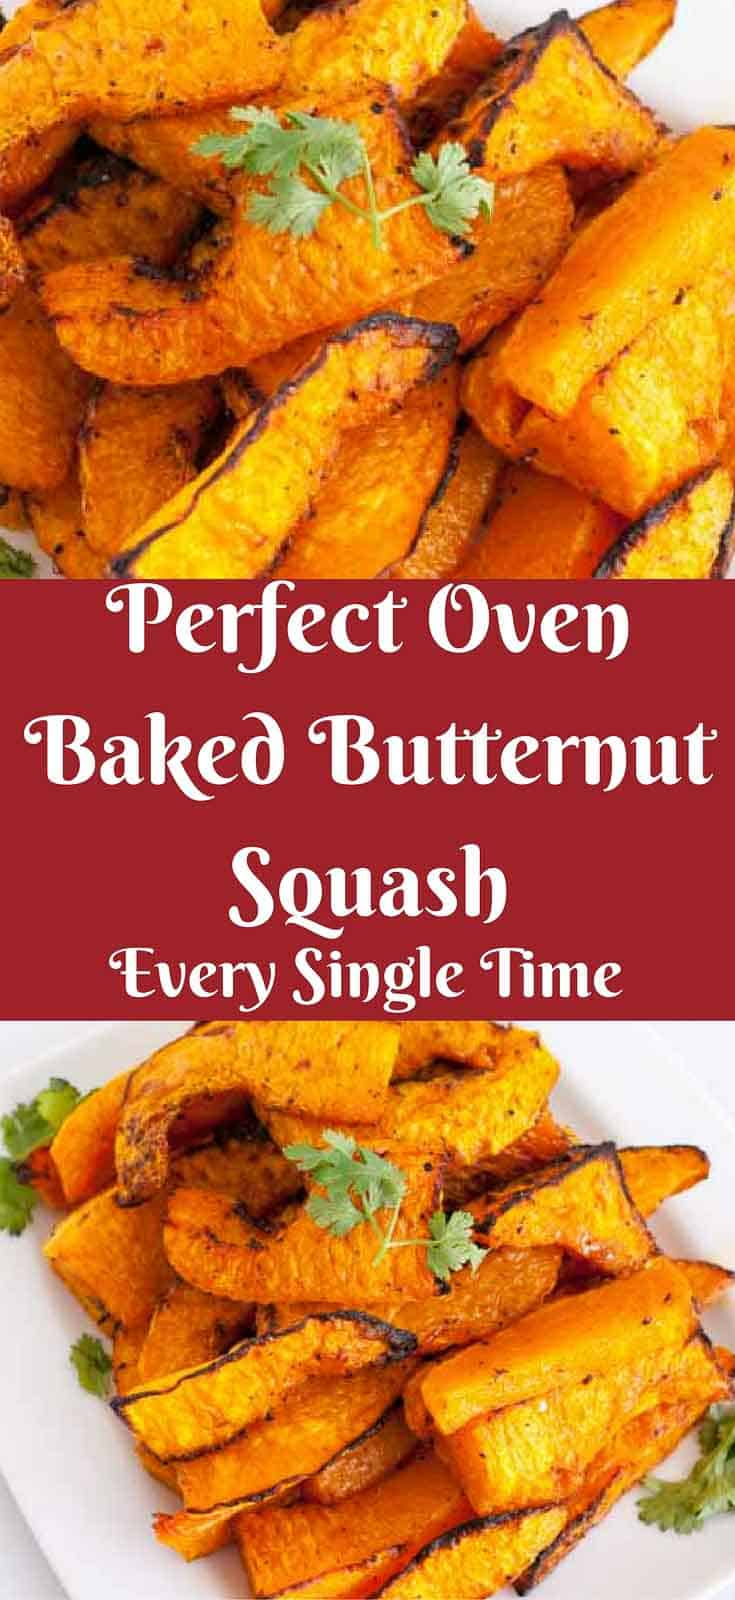 Butternut squash when baked really brings out the sweetness of the vegetable and needs nothing more than just a sprinkle of salt, pepper and good quality olive oil. This simple, easy and effortless recipe will have you making this nutritious vegetable more often than you planed because it takes less than 20 minutes and the kids will love it too.